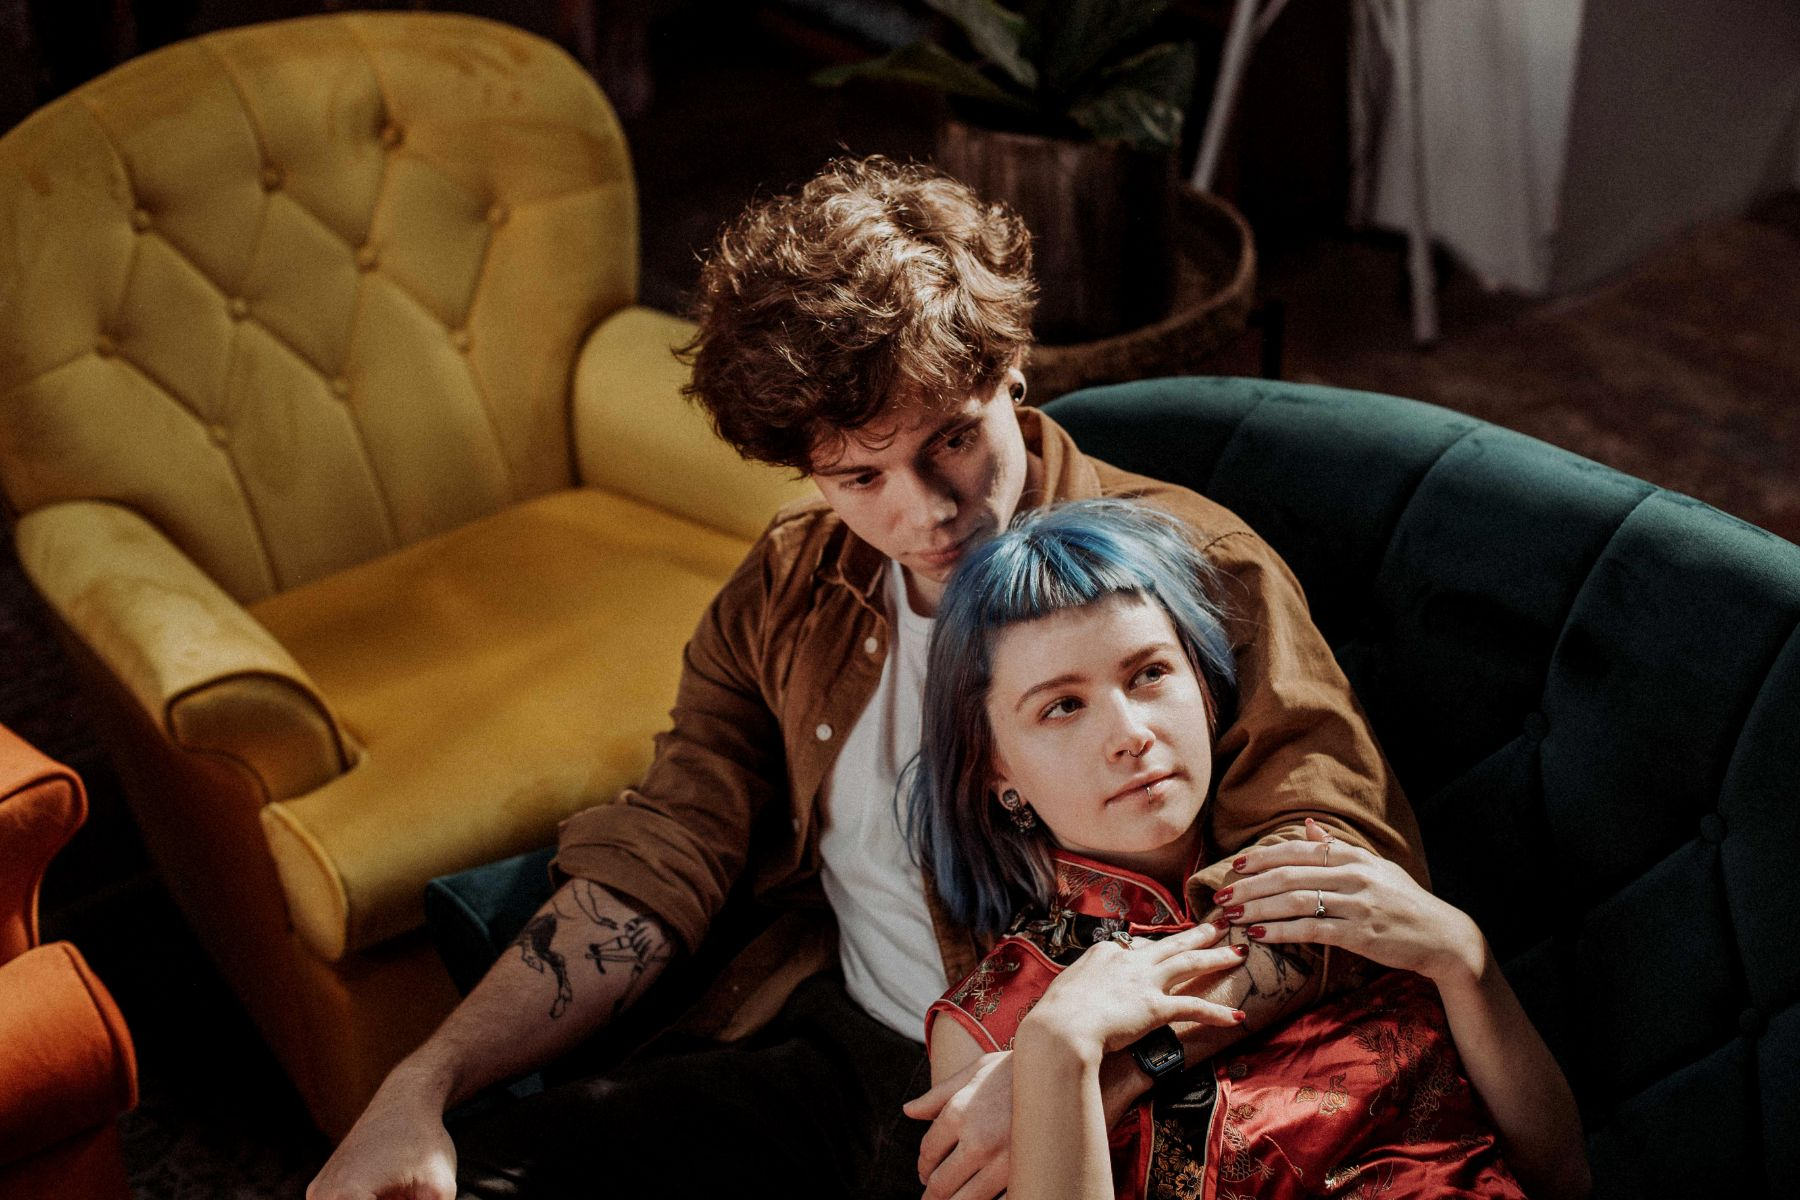 Modern couple sitting together on trendy turquoise couch, embracing in artistic cafe for couple portfolio